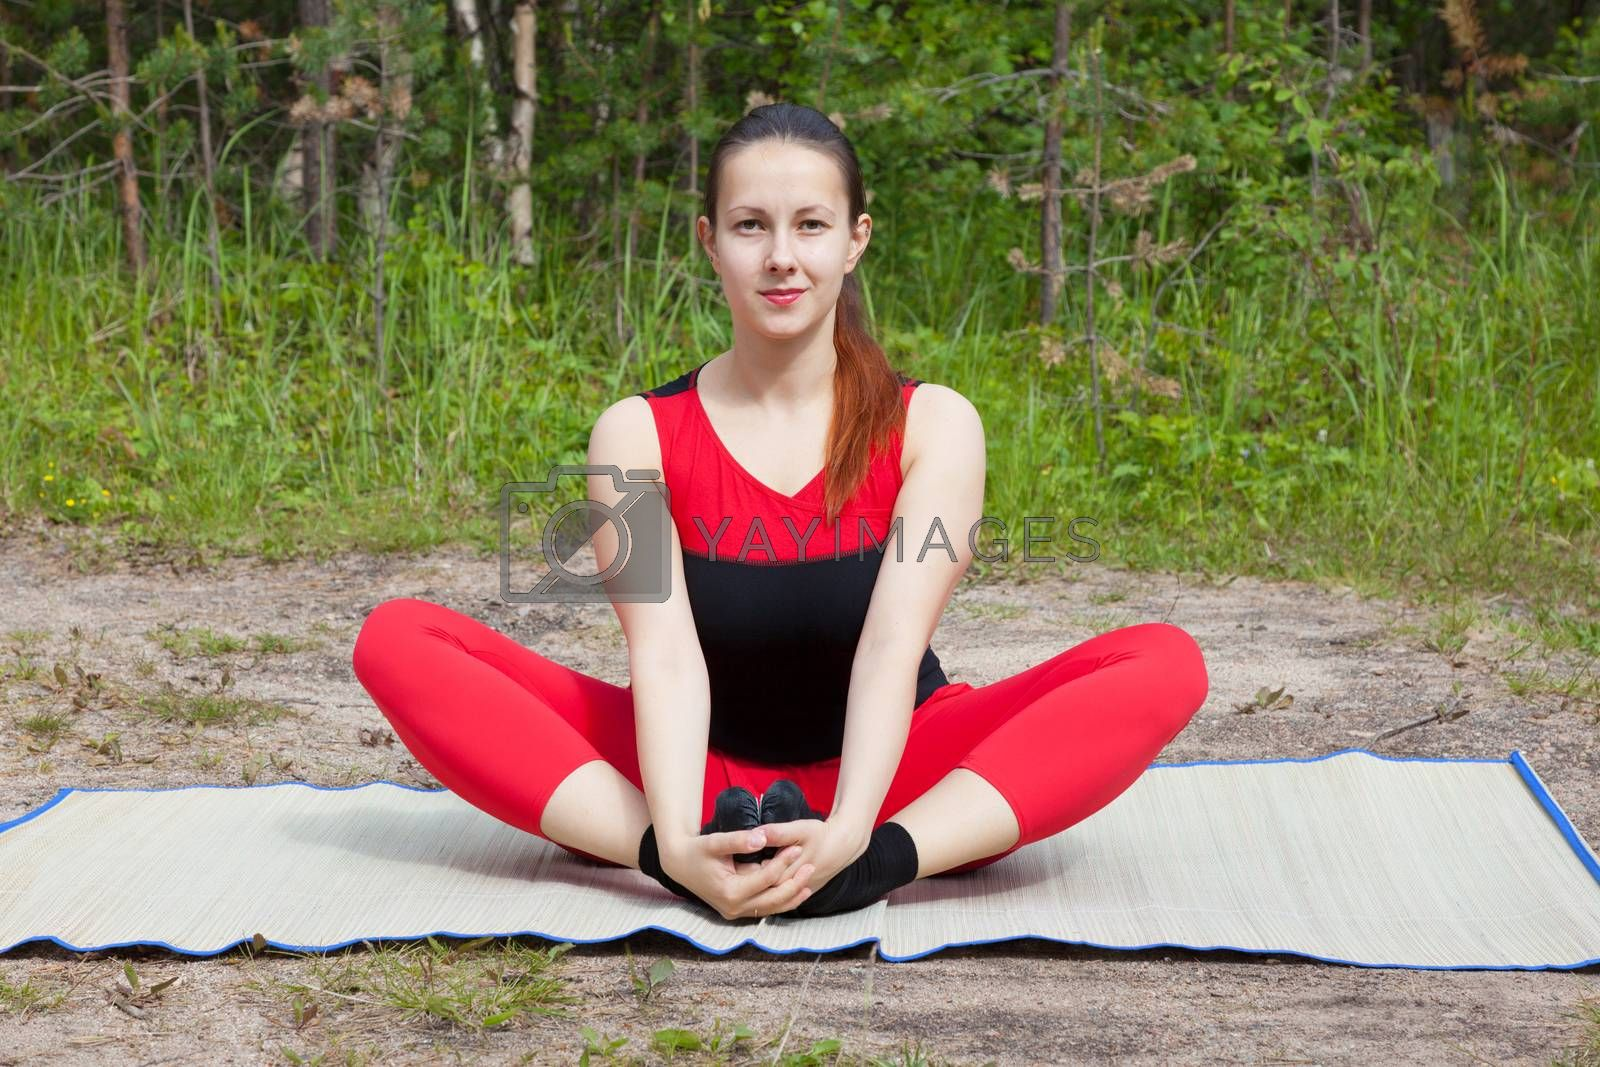 The young girl engaged in yoga class in a forest glade